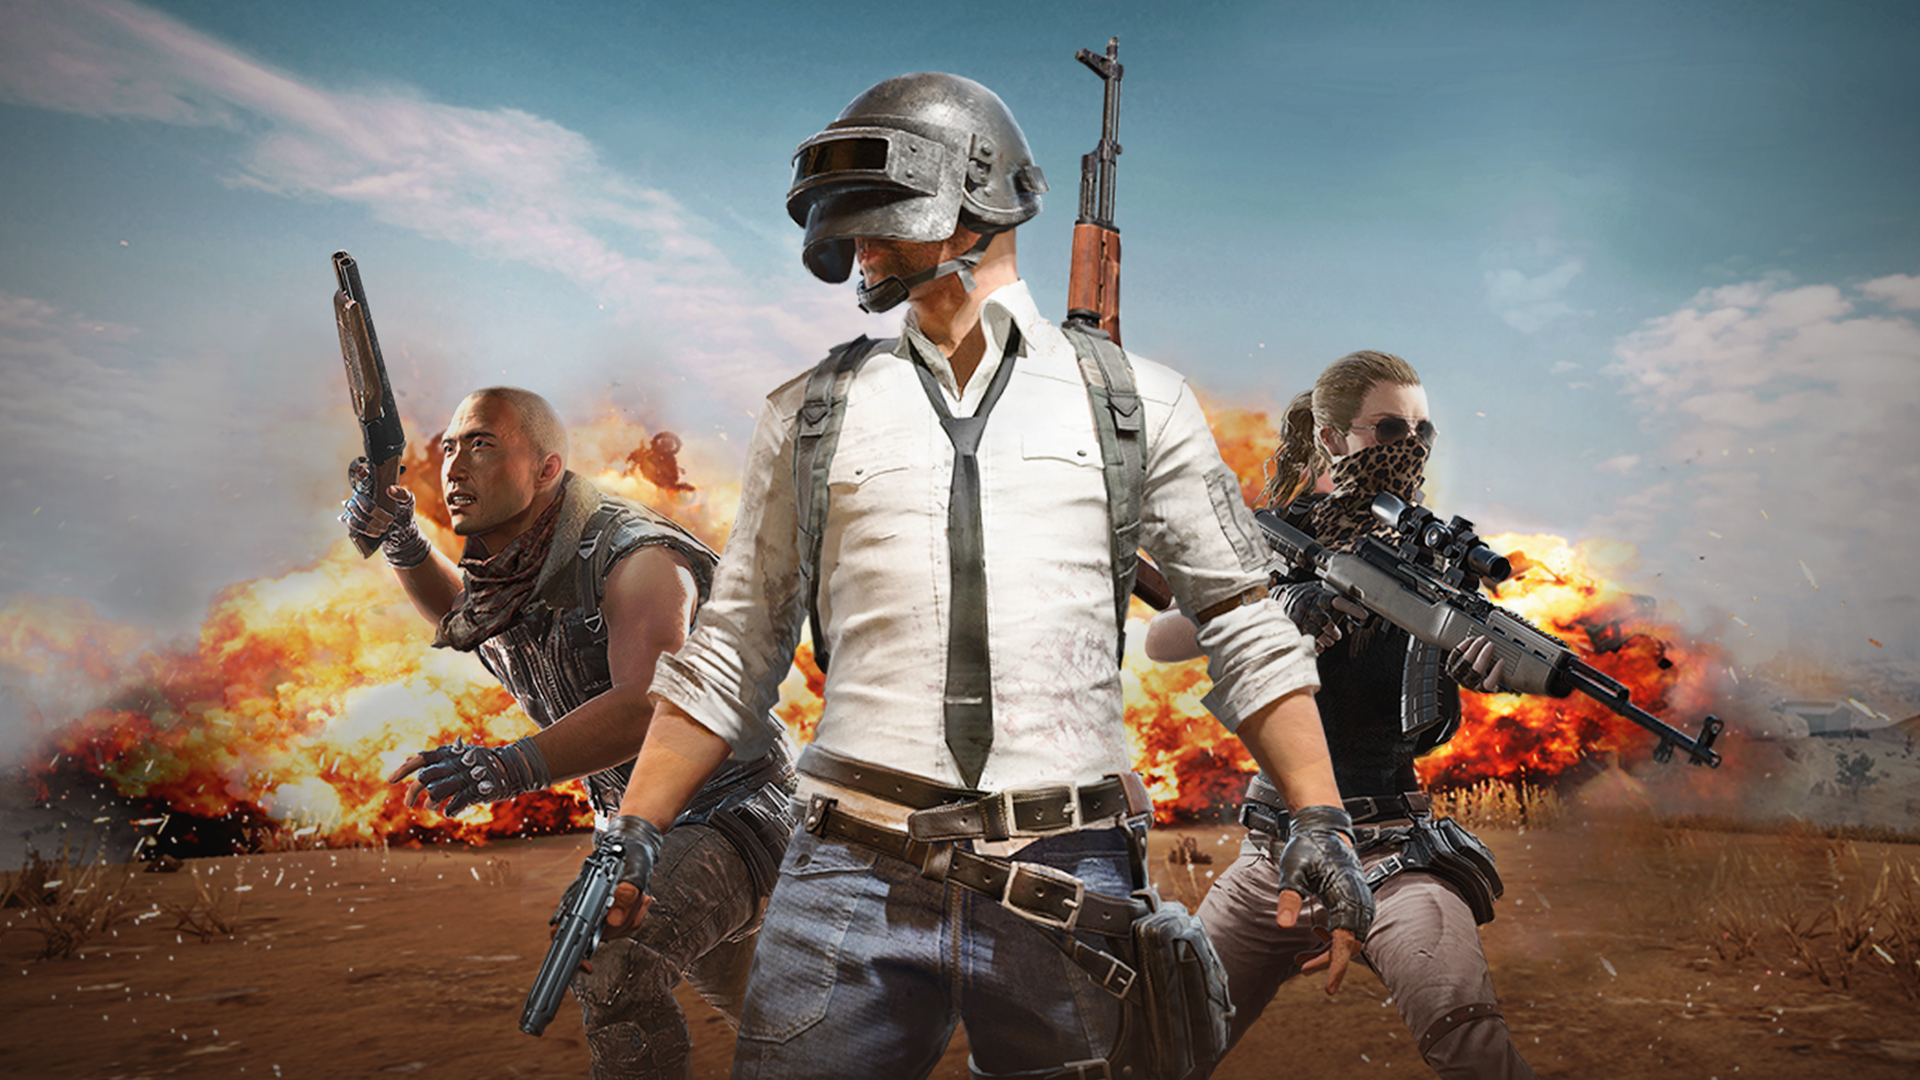 'PUBG' New Update - It turns on cross-play for PS4 and XBO consoles